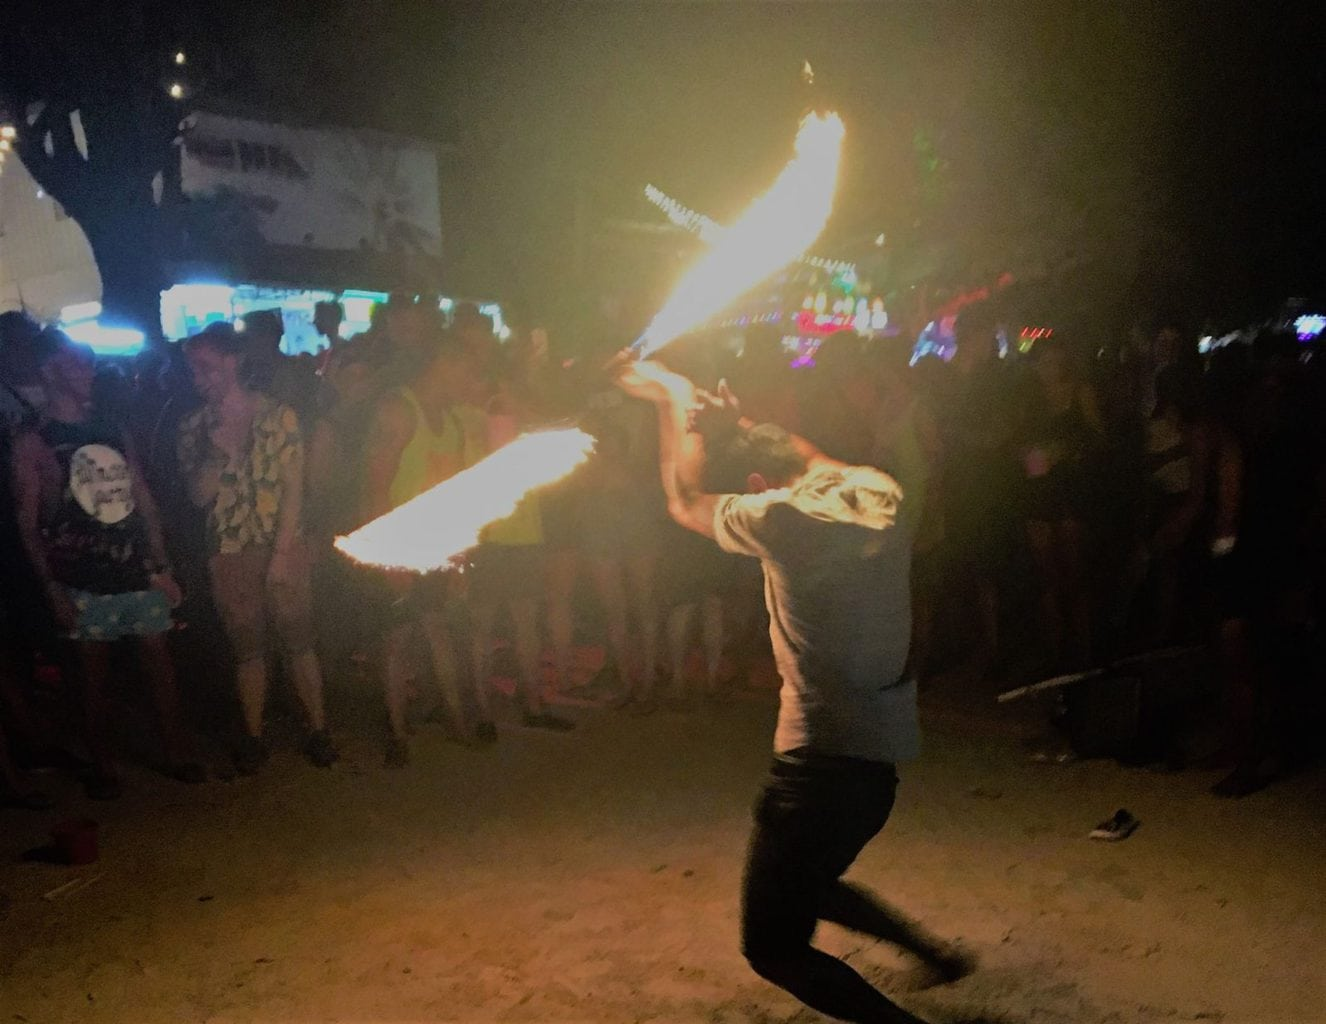 Full Moon Party Fire Sticks